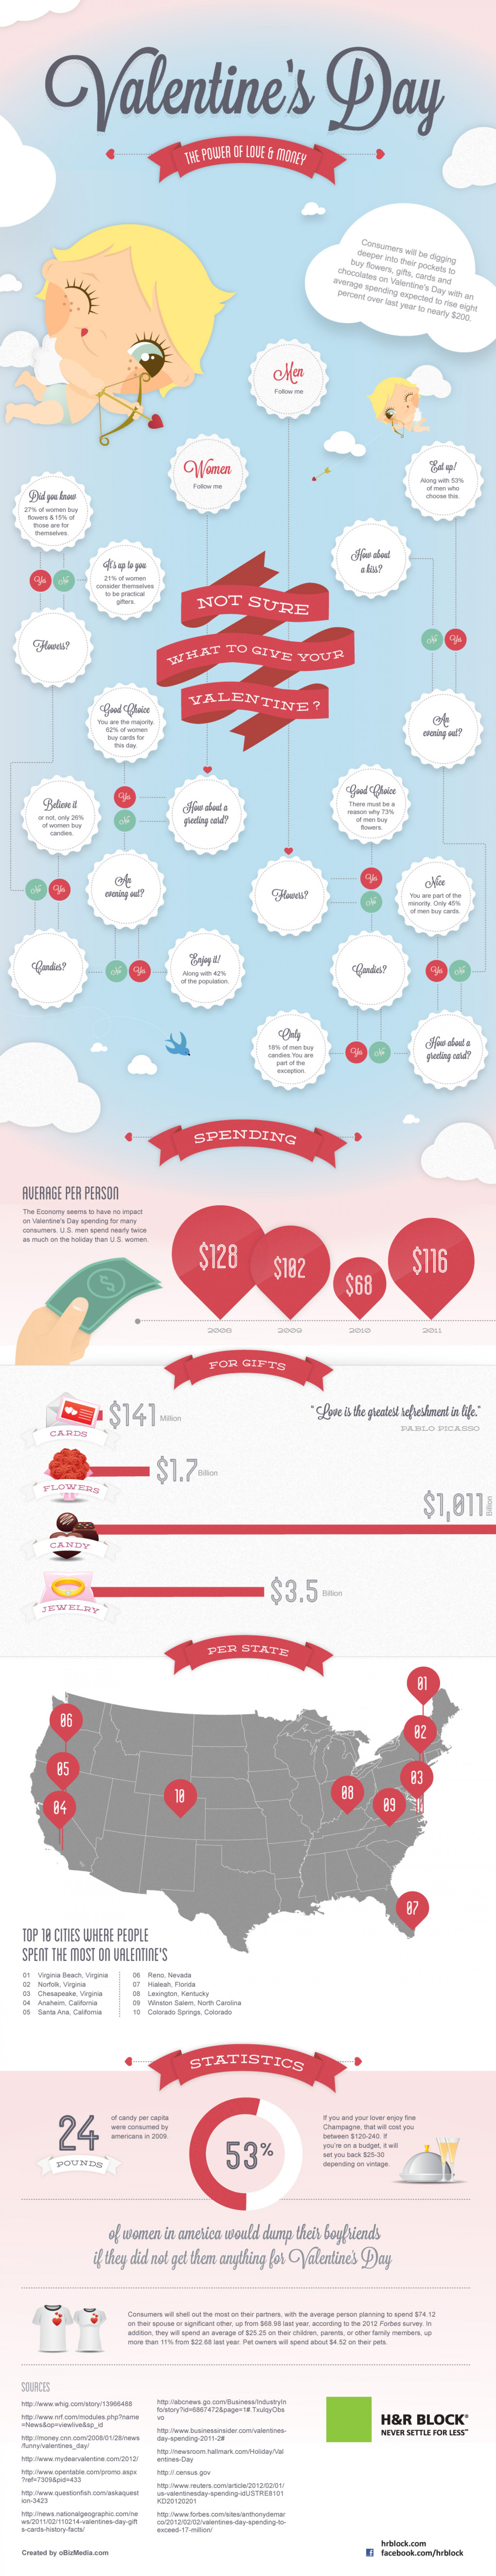 Valentine's Day Spending: Power Of Love and Money Infographic